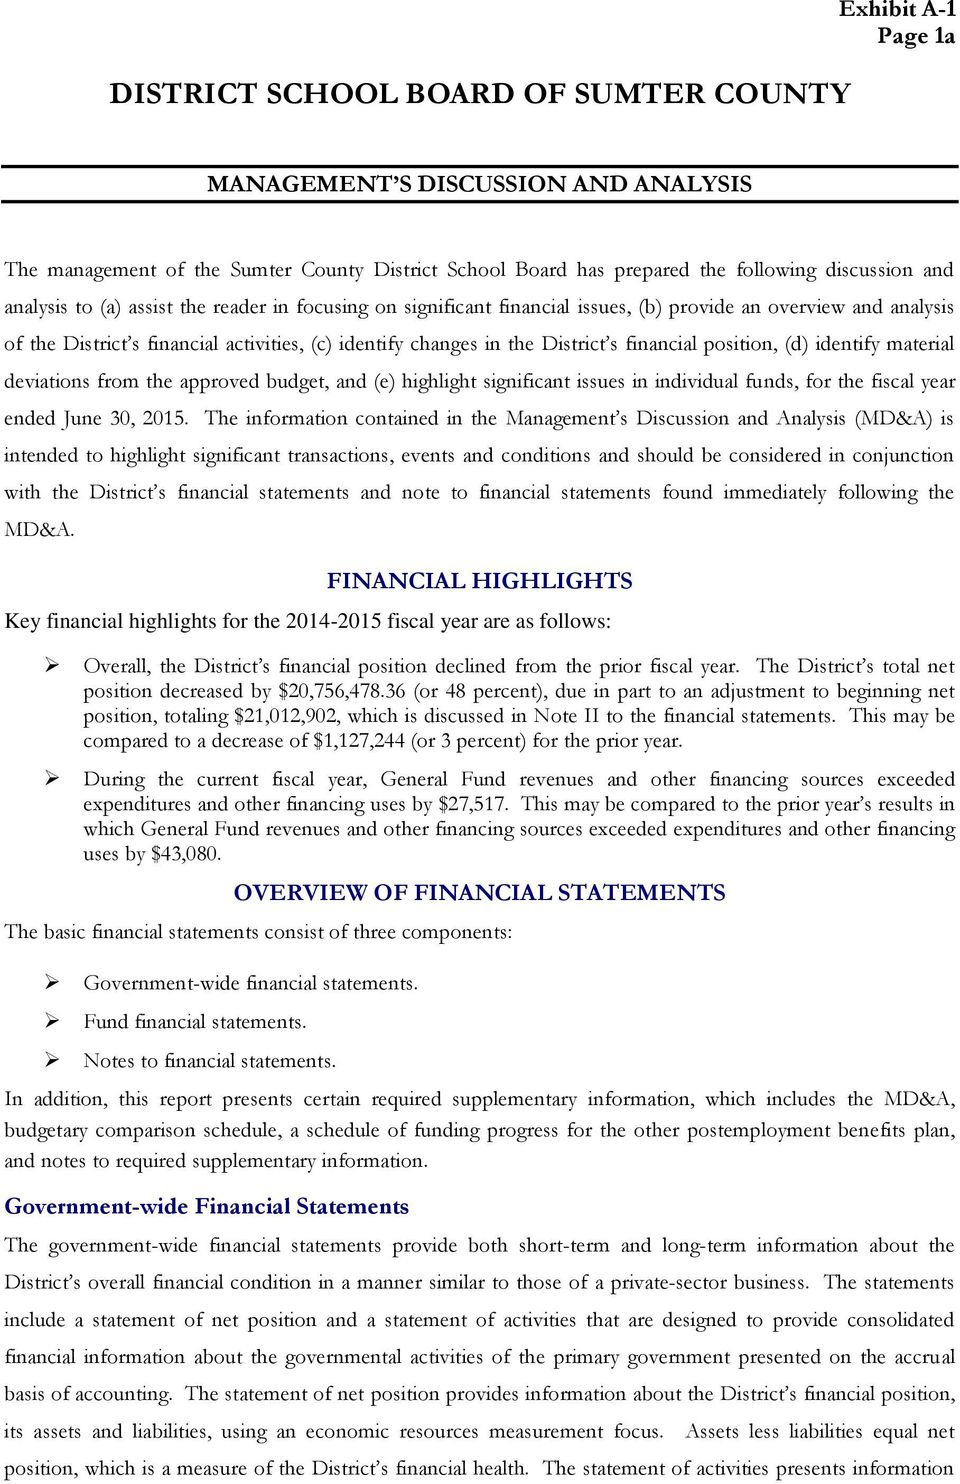 financial position, (d) identify material deviations from the approved budget, and (e) highlight significant issues in individual funds, for the fiscal year ended June 30, 2015.